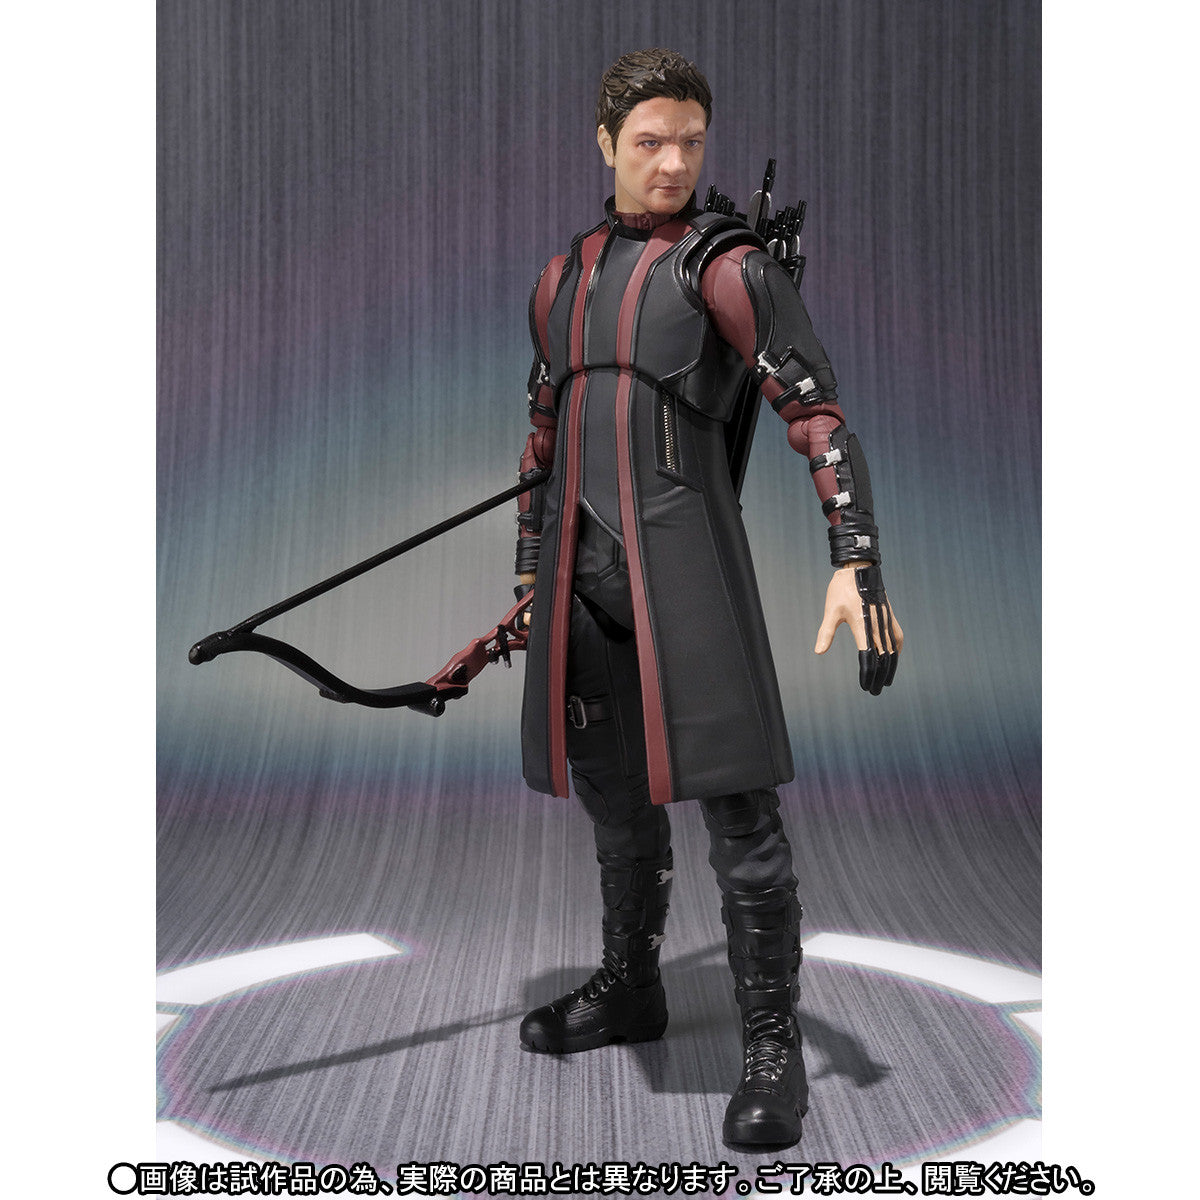 S.H.Figuarts - Avengers: Age of Ultron - Hawkeye (TamashiiWeb Exclusive) - Marvelous Toys - 4